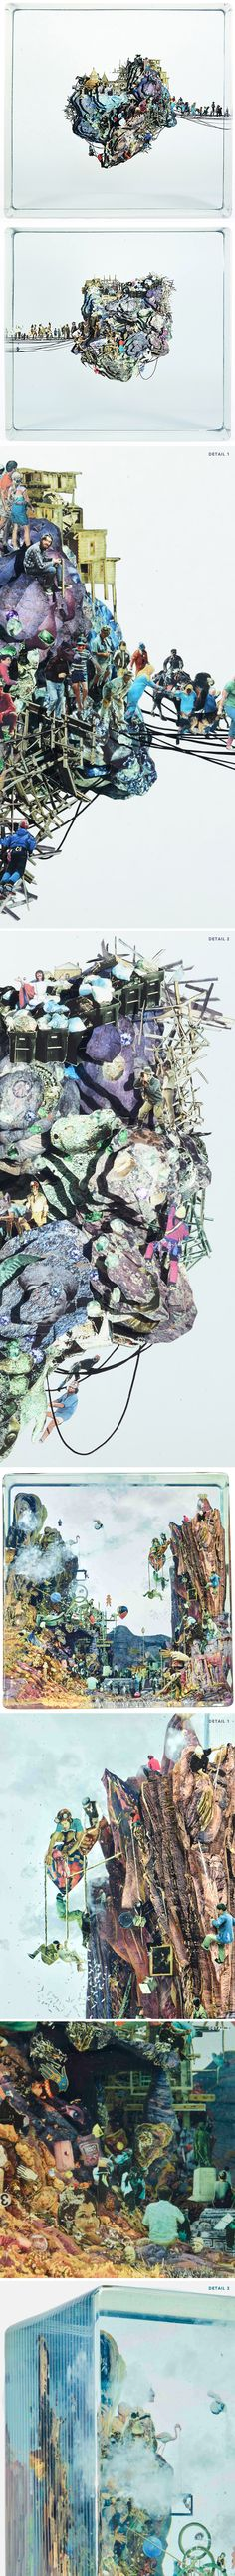 dustin yellin - Alphi Creative